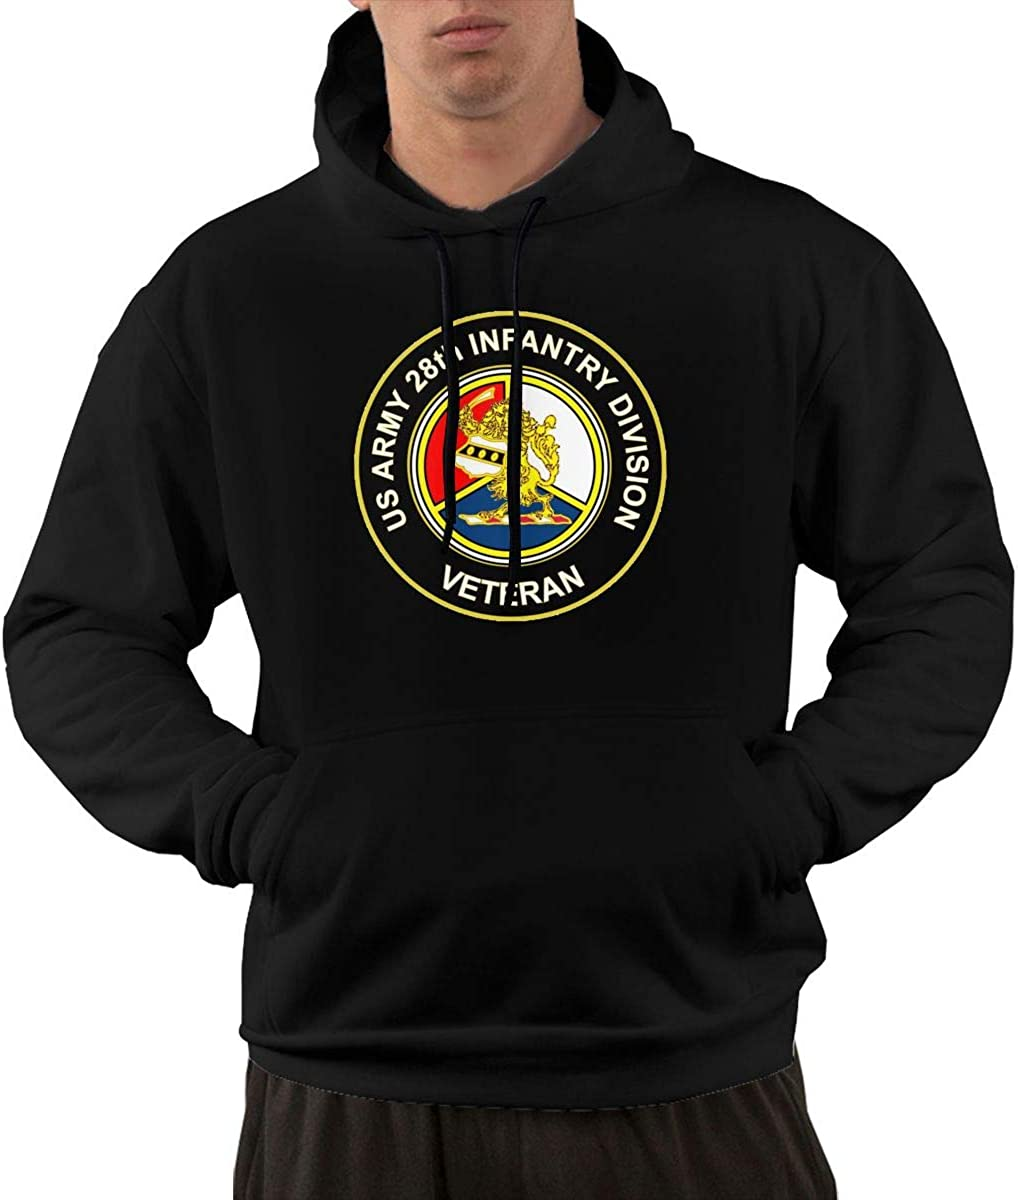 U.S Army Veteran 28th Infantry Division Mens Front Pocket Pullover Cotton Hoodie Sweatshirts